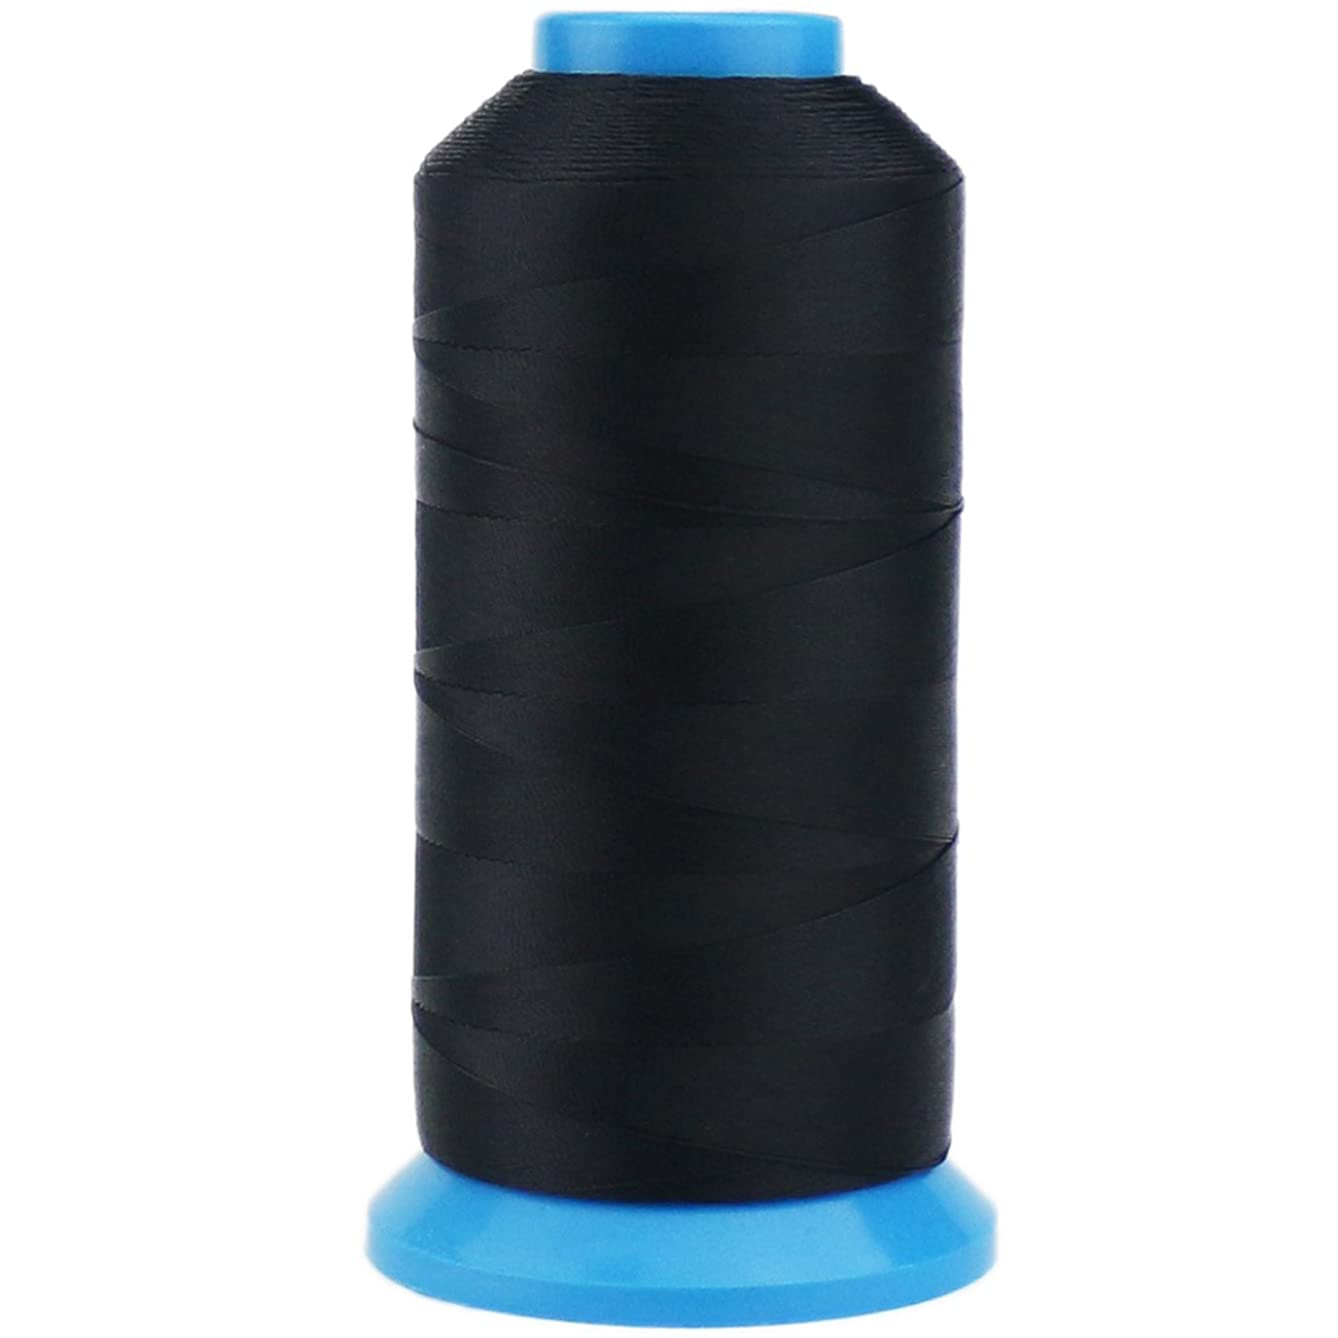 TinaWood 1500 Yard Size T70 #69 Bonded Nylon Sewing Thread for Weaves (Black)